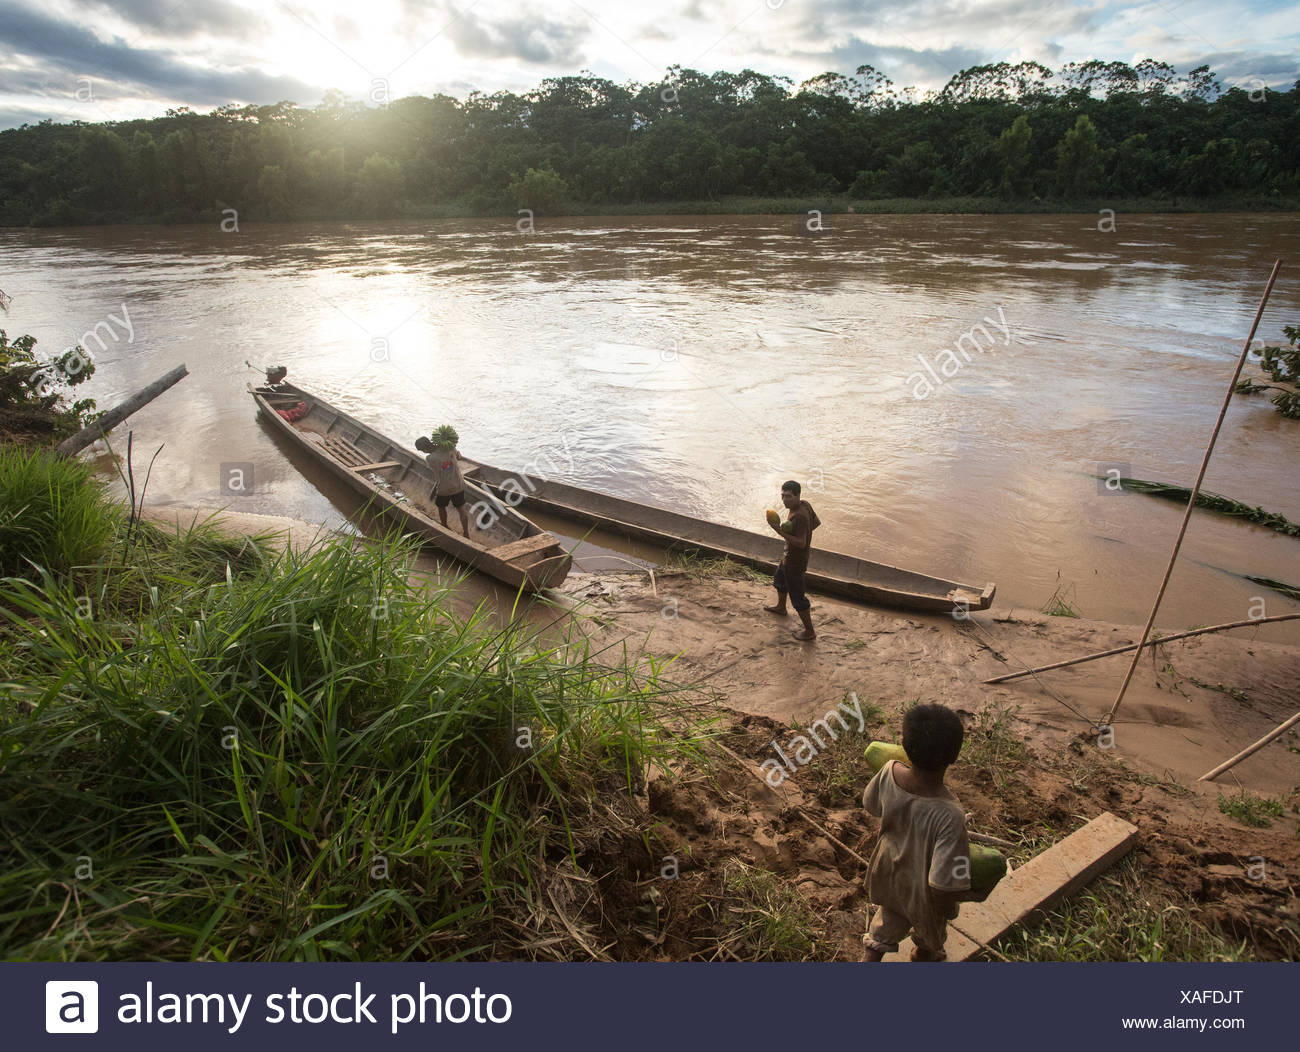 Tsimane people approach a canoe to transport goods on the Maniqui River, near Anachere, in the Amazon rainforest, Bolivia. - Stock Image